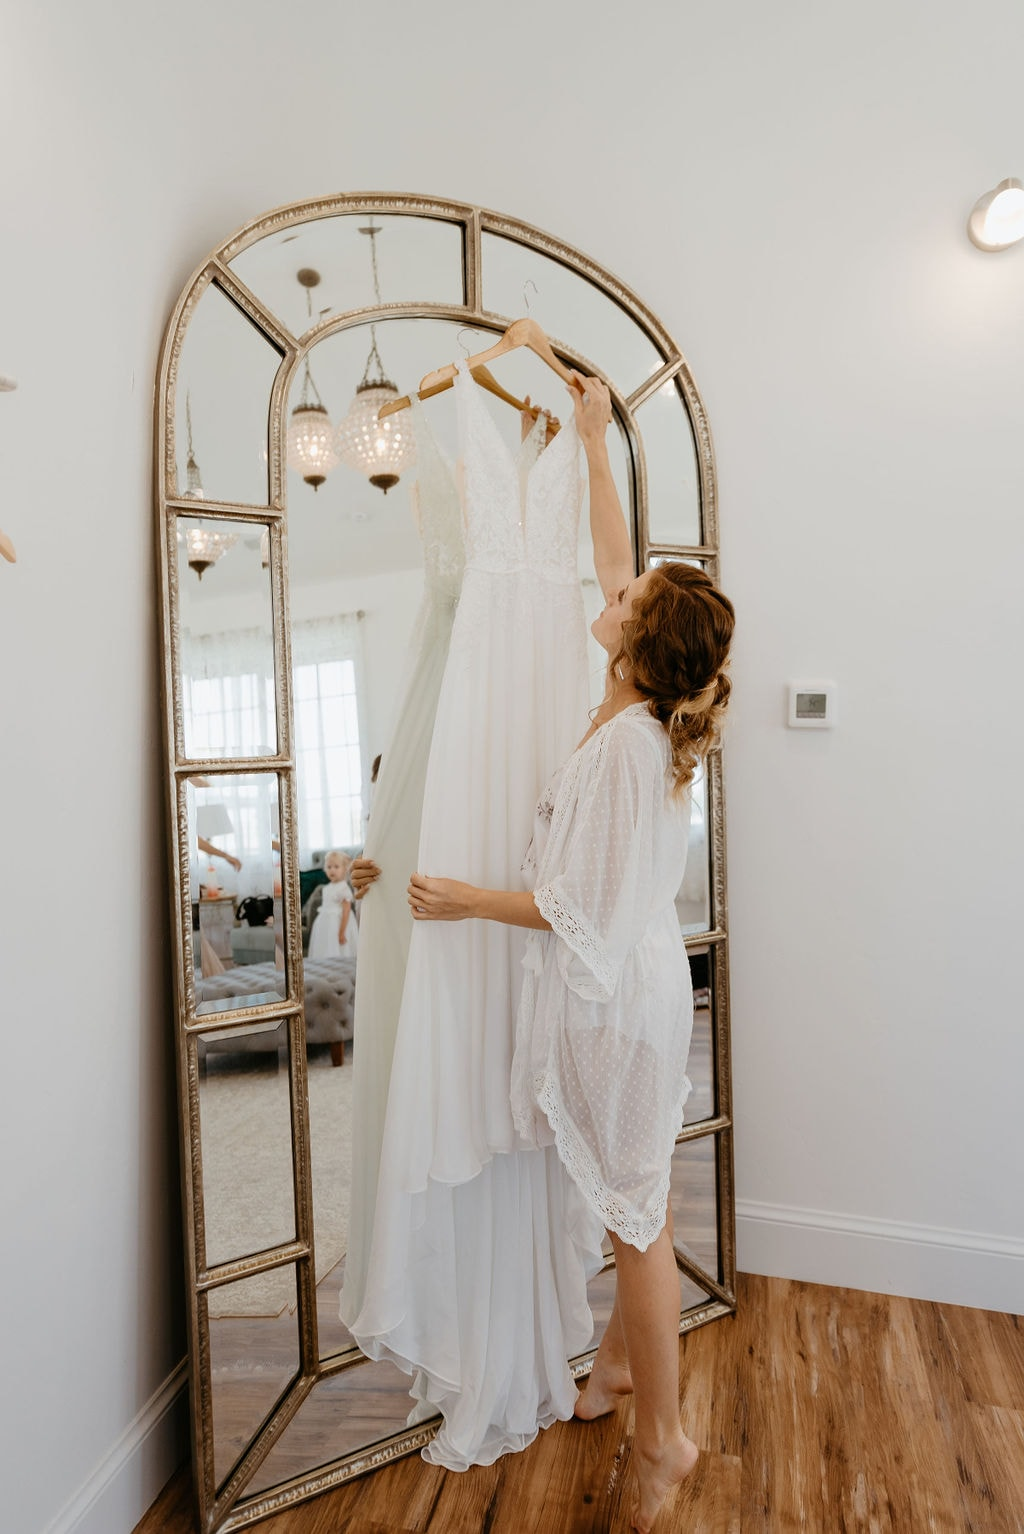 Bride gets her dress to put it on at bonnie blues wedding